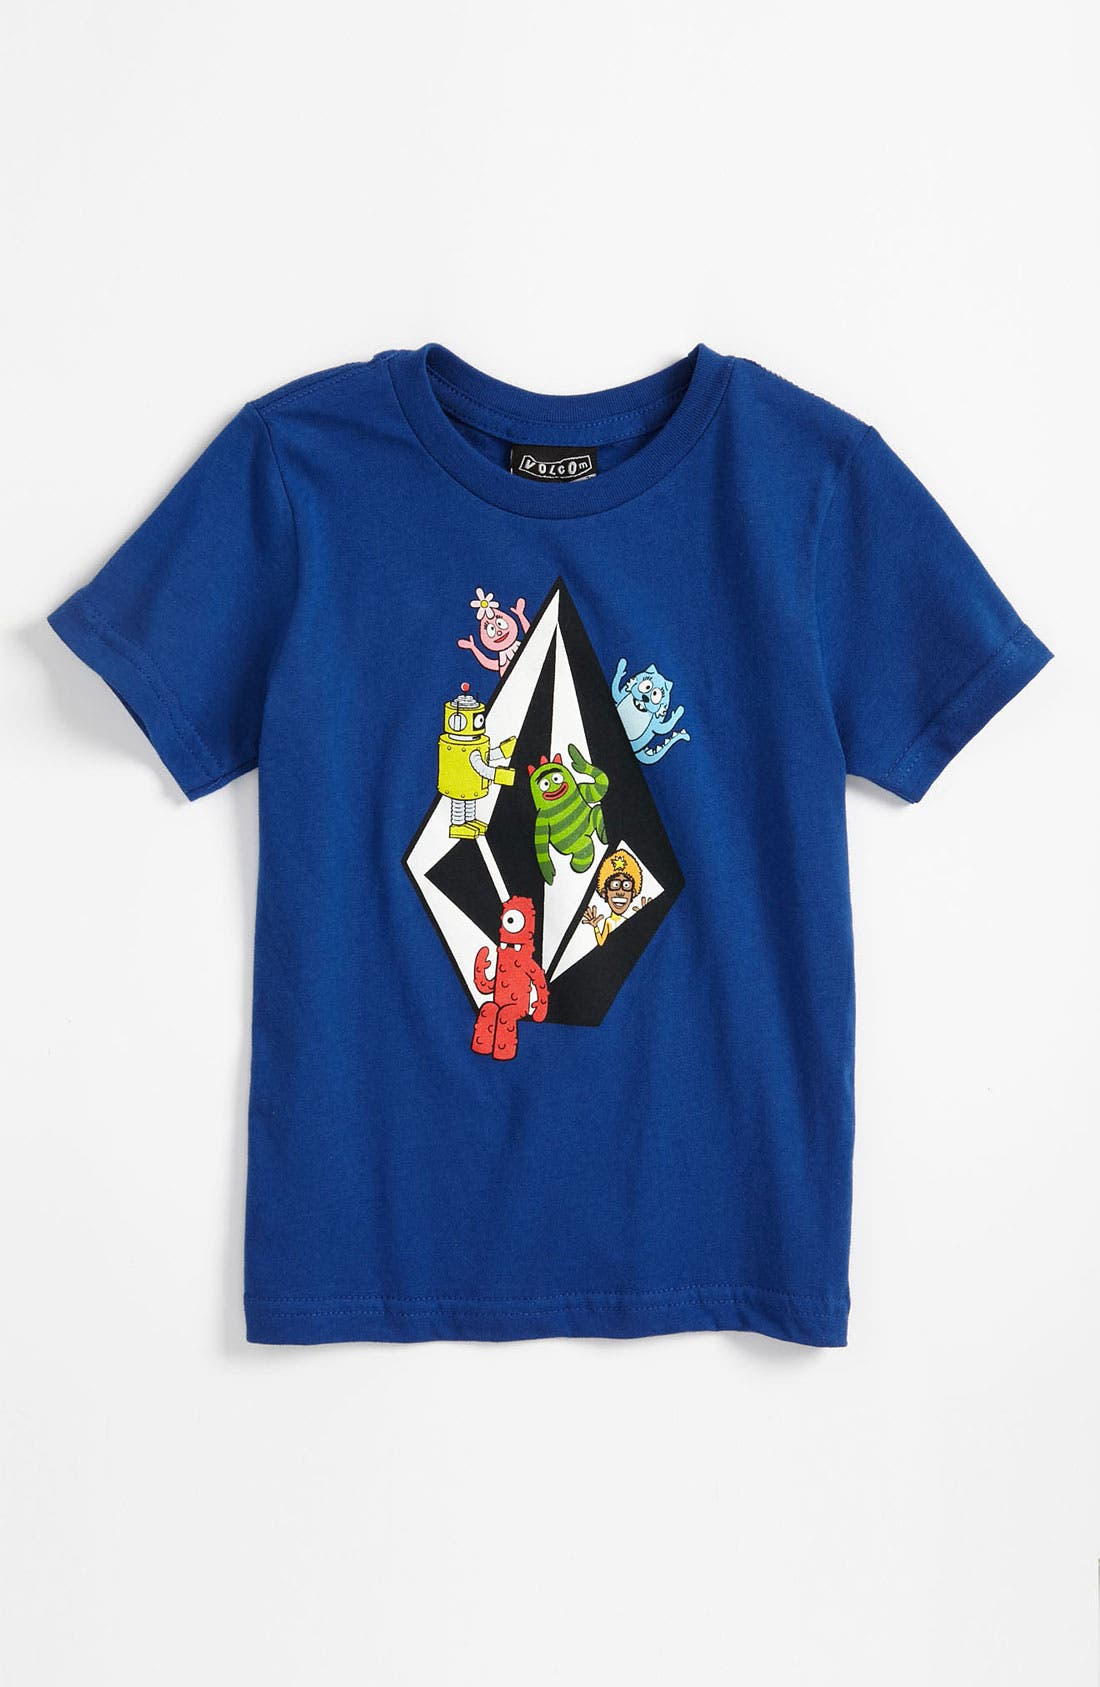 Main Image - Volcom 'Yo Gabba Gabba!' T-Shirt (Little Boys)